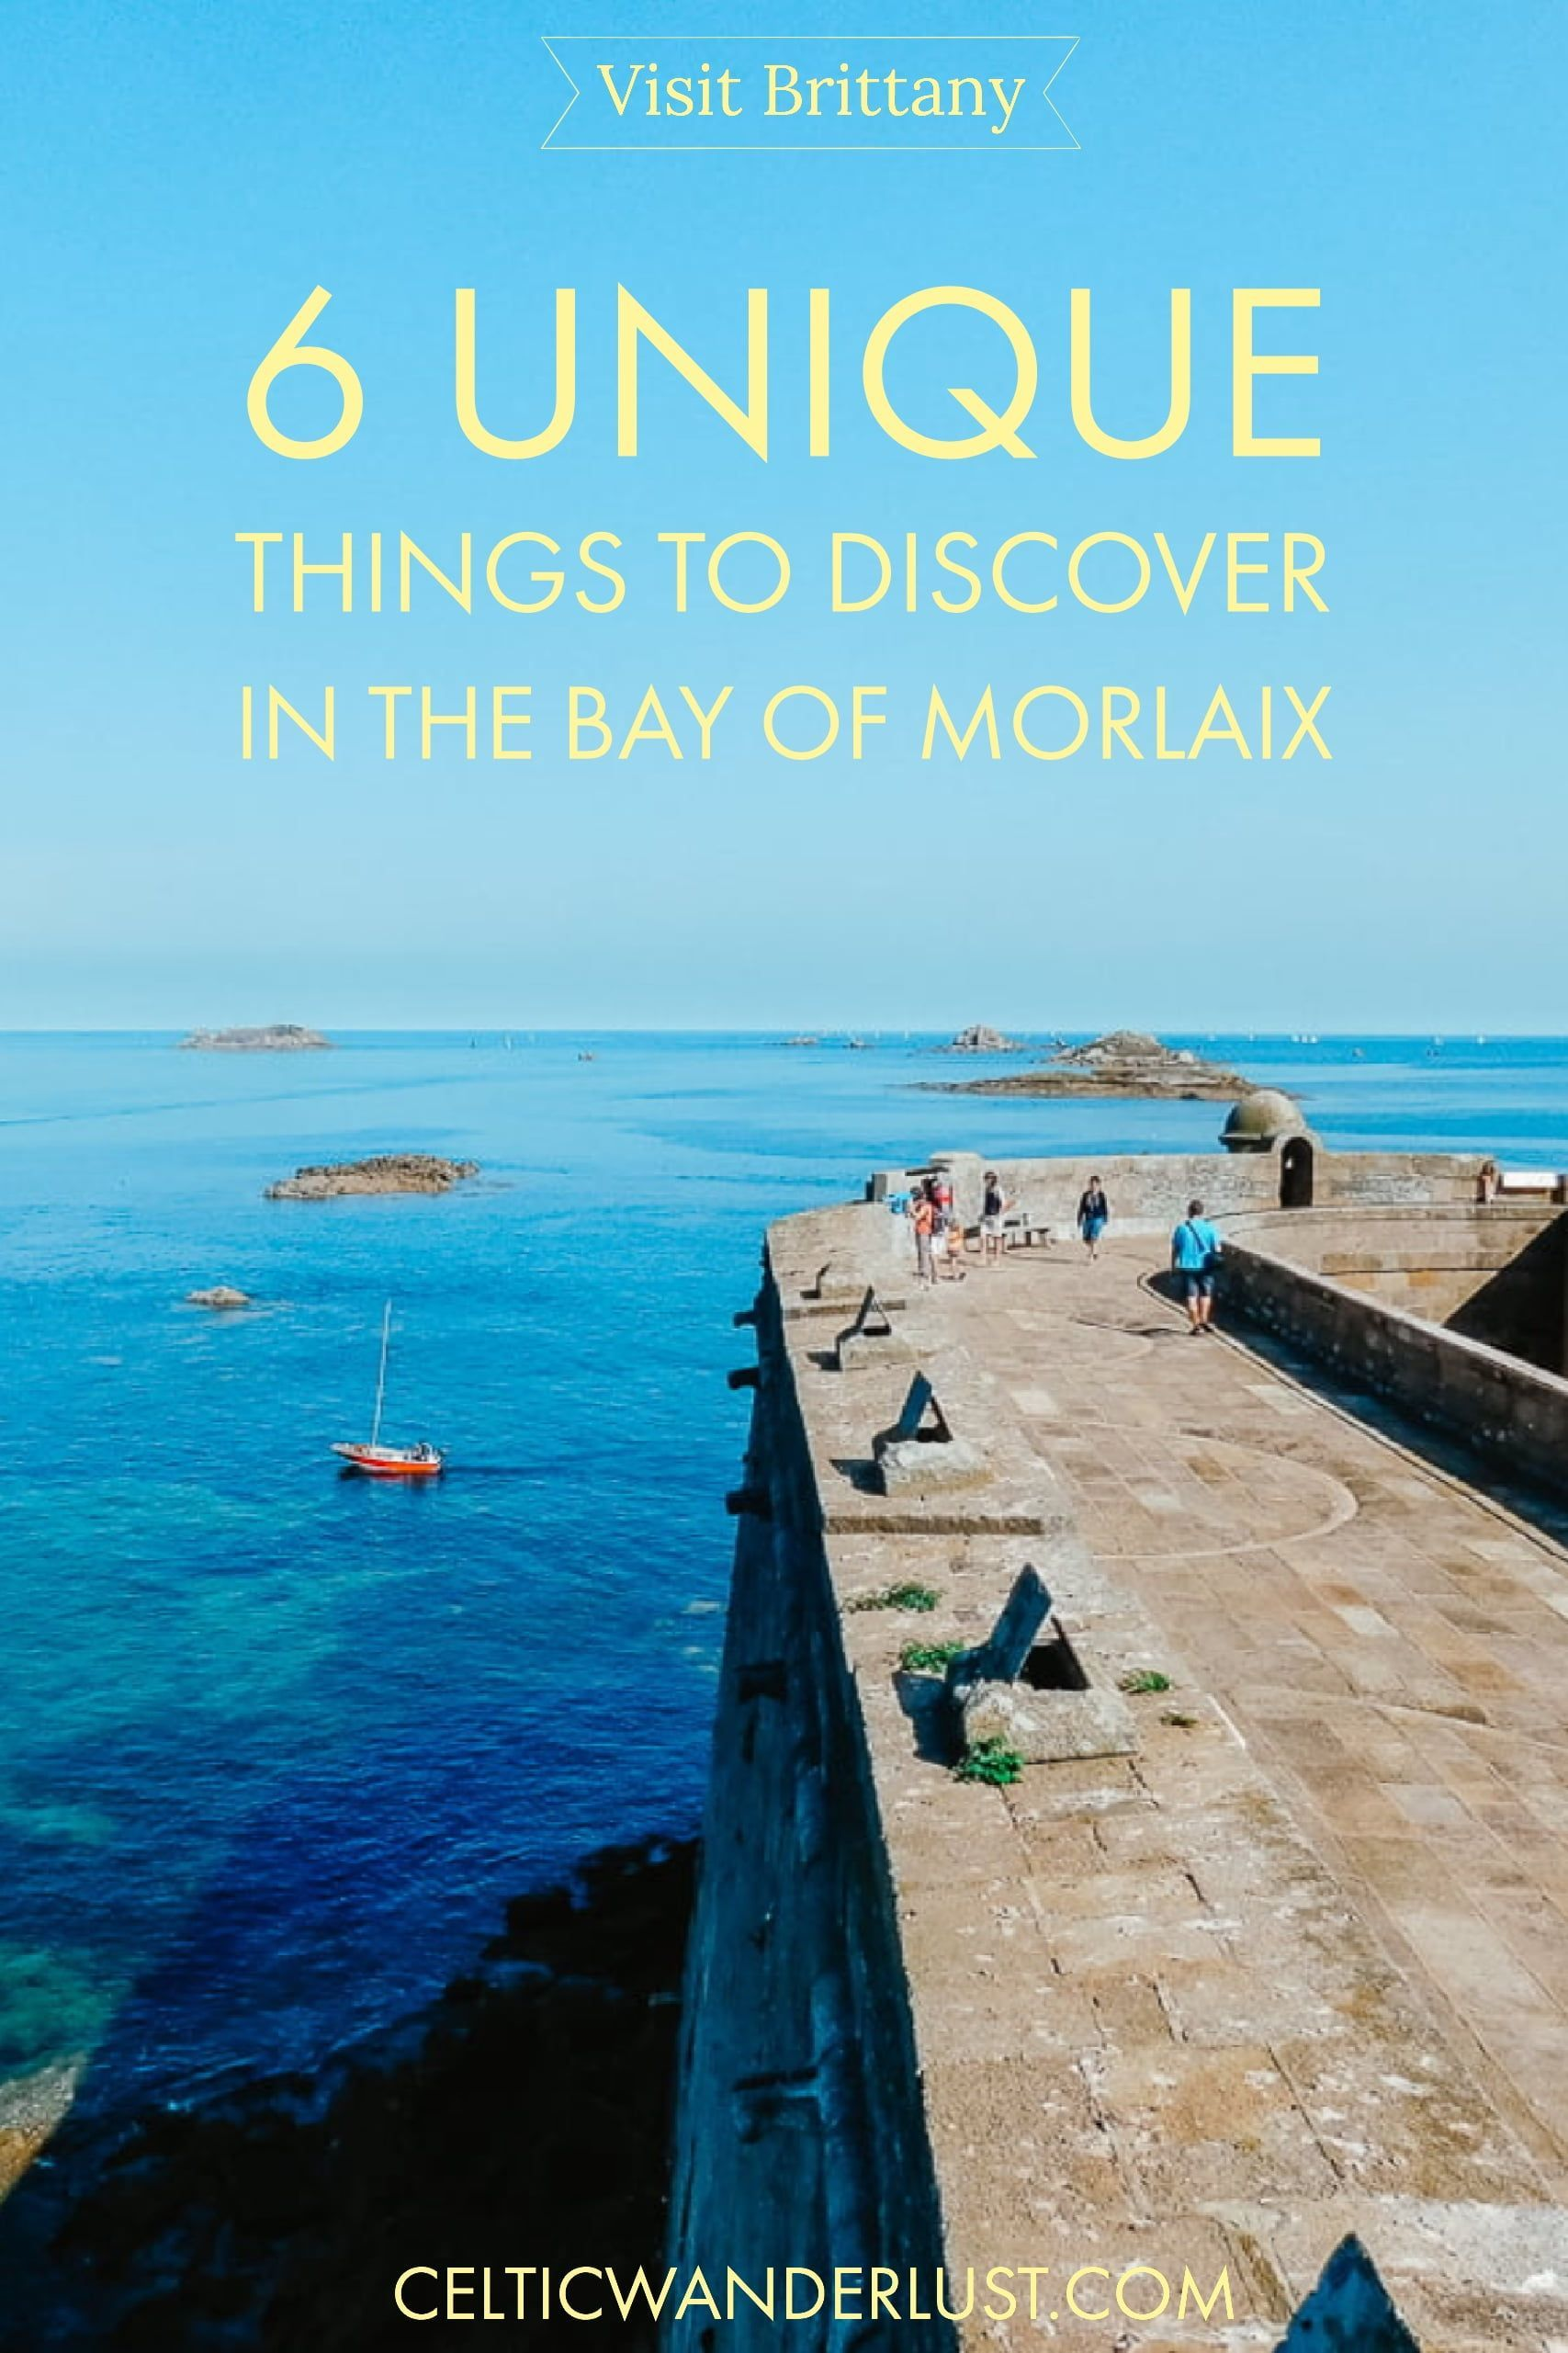 6 Unique Things To Discover In The Bay of Morlaix, France is part of Unique Things To Discover In The Bay Of Morlaix France - The Bay of Morlaix is one of the reasons why I like to visit Finistère's northern coast  From historical sites to architectural landmarks, from religious heritage to lush botanical gardens, the Bay of Morlaix doesn't fall short of things to see